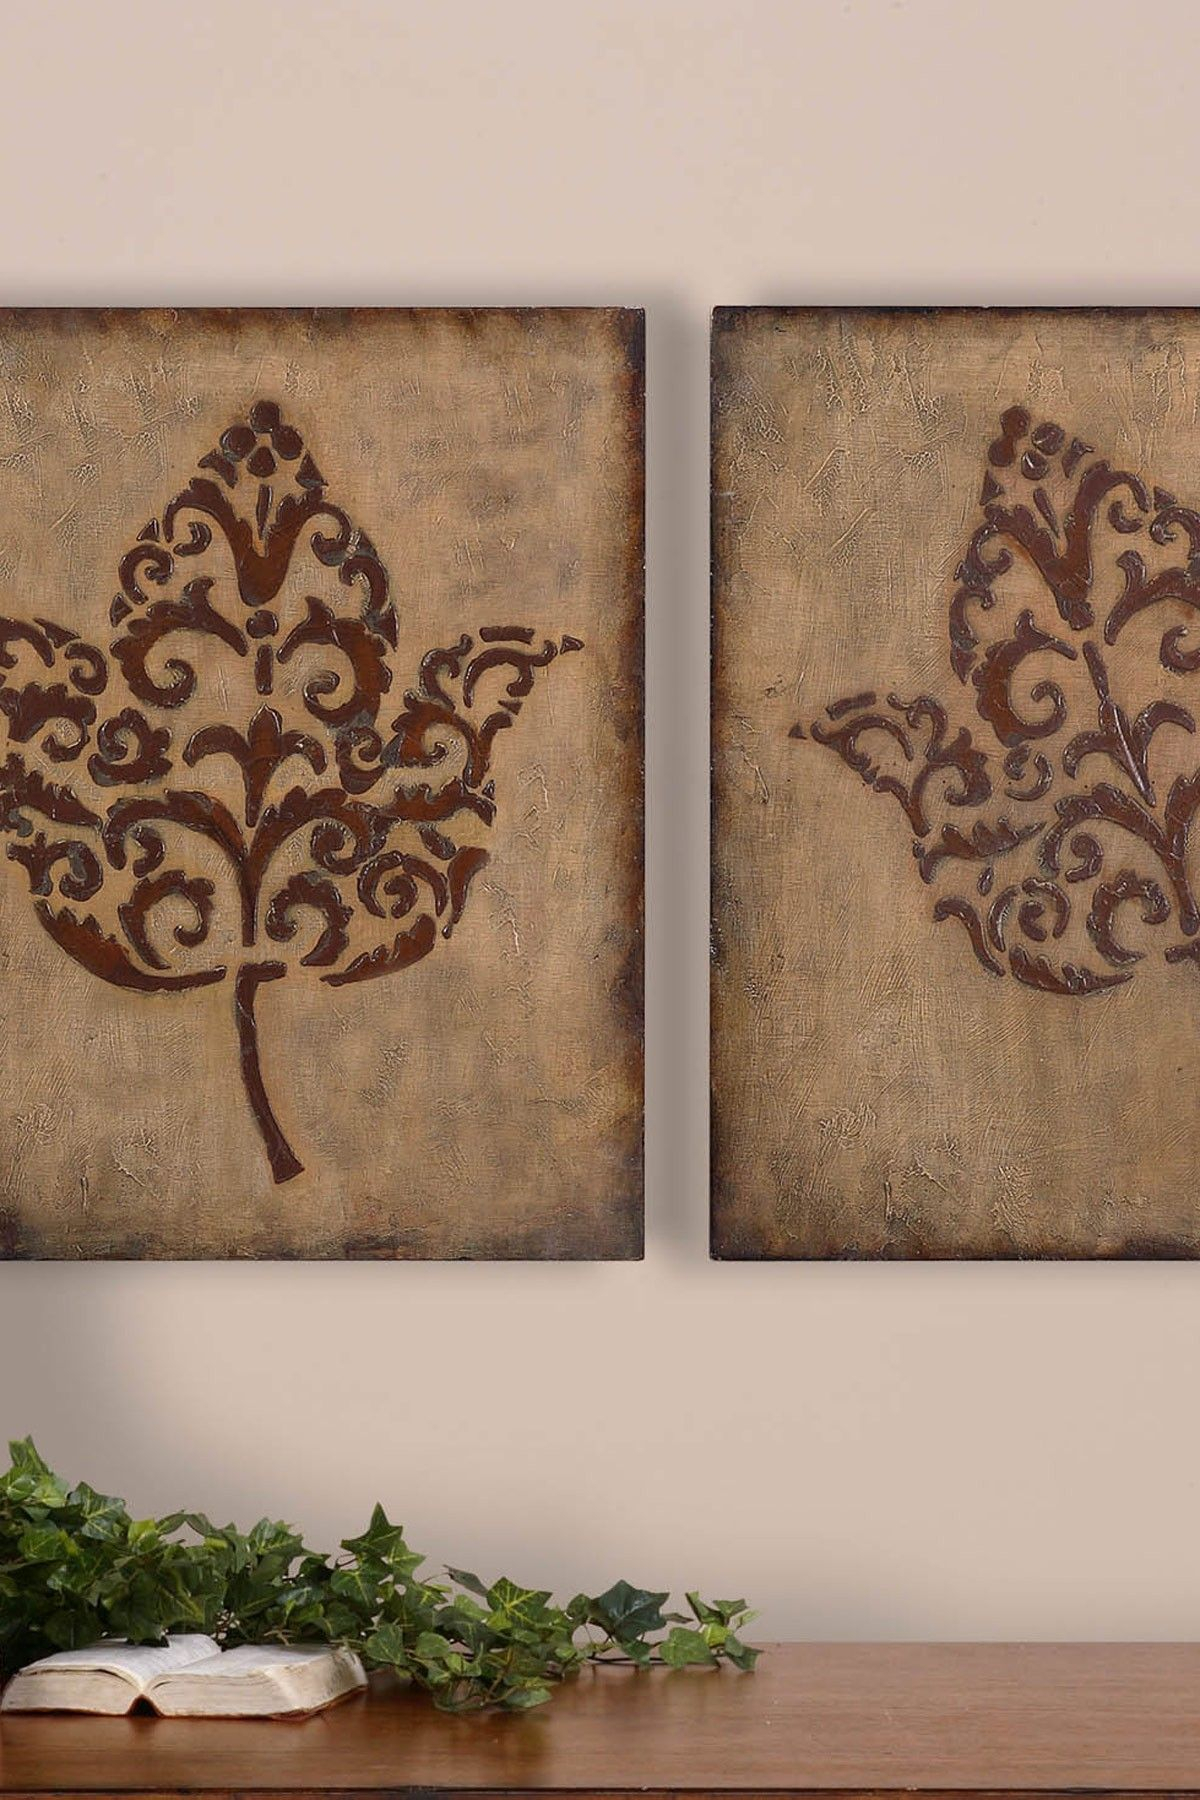 Decorative Leaf Wall Panels | Craft & Diy | Decorative With Regard To Panel Wood Wall Decor Sets (Set Of 2) (Gallery 14 of 30)